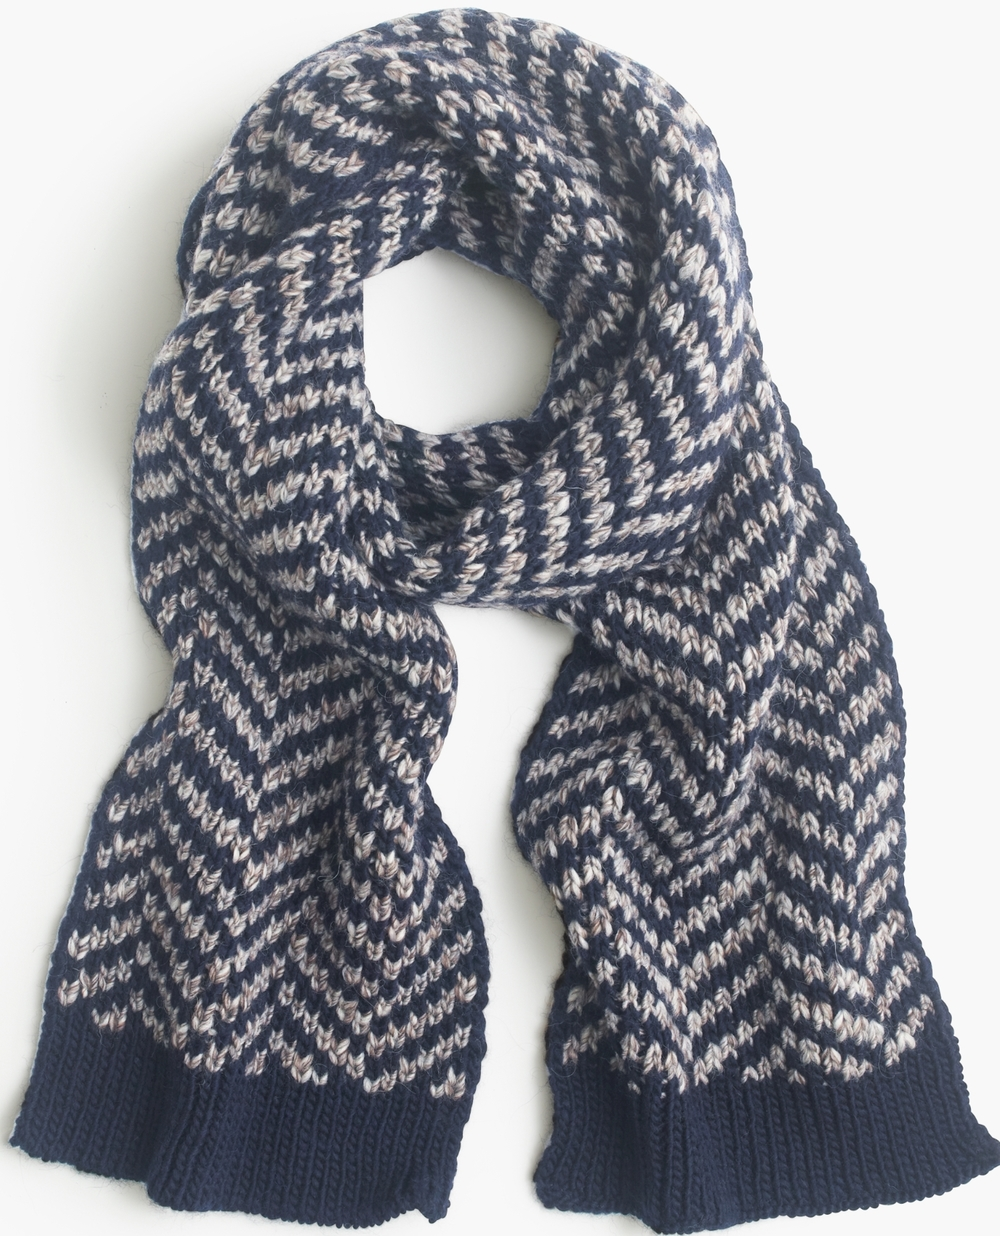 J.Crew Wide Chevron Scarf, $118